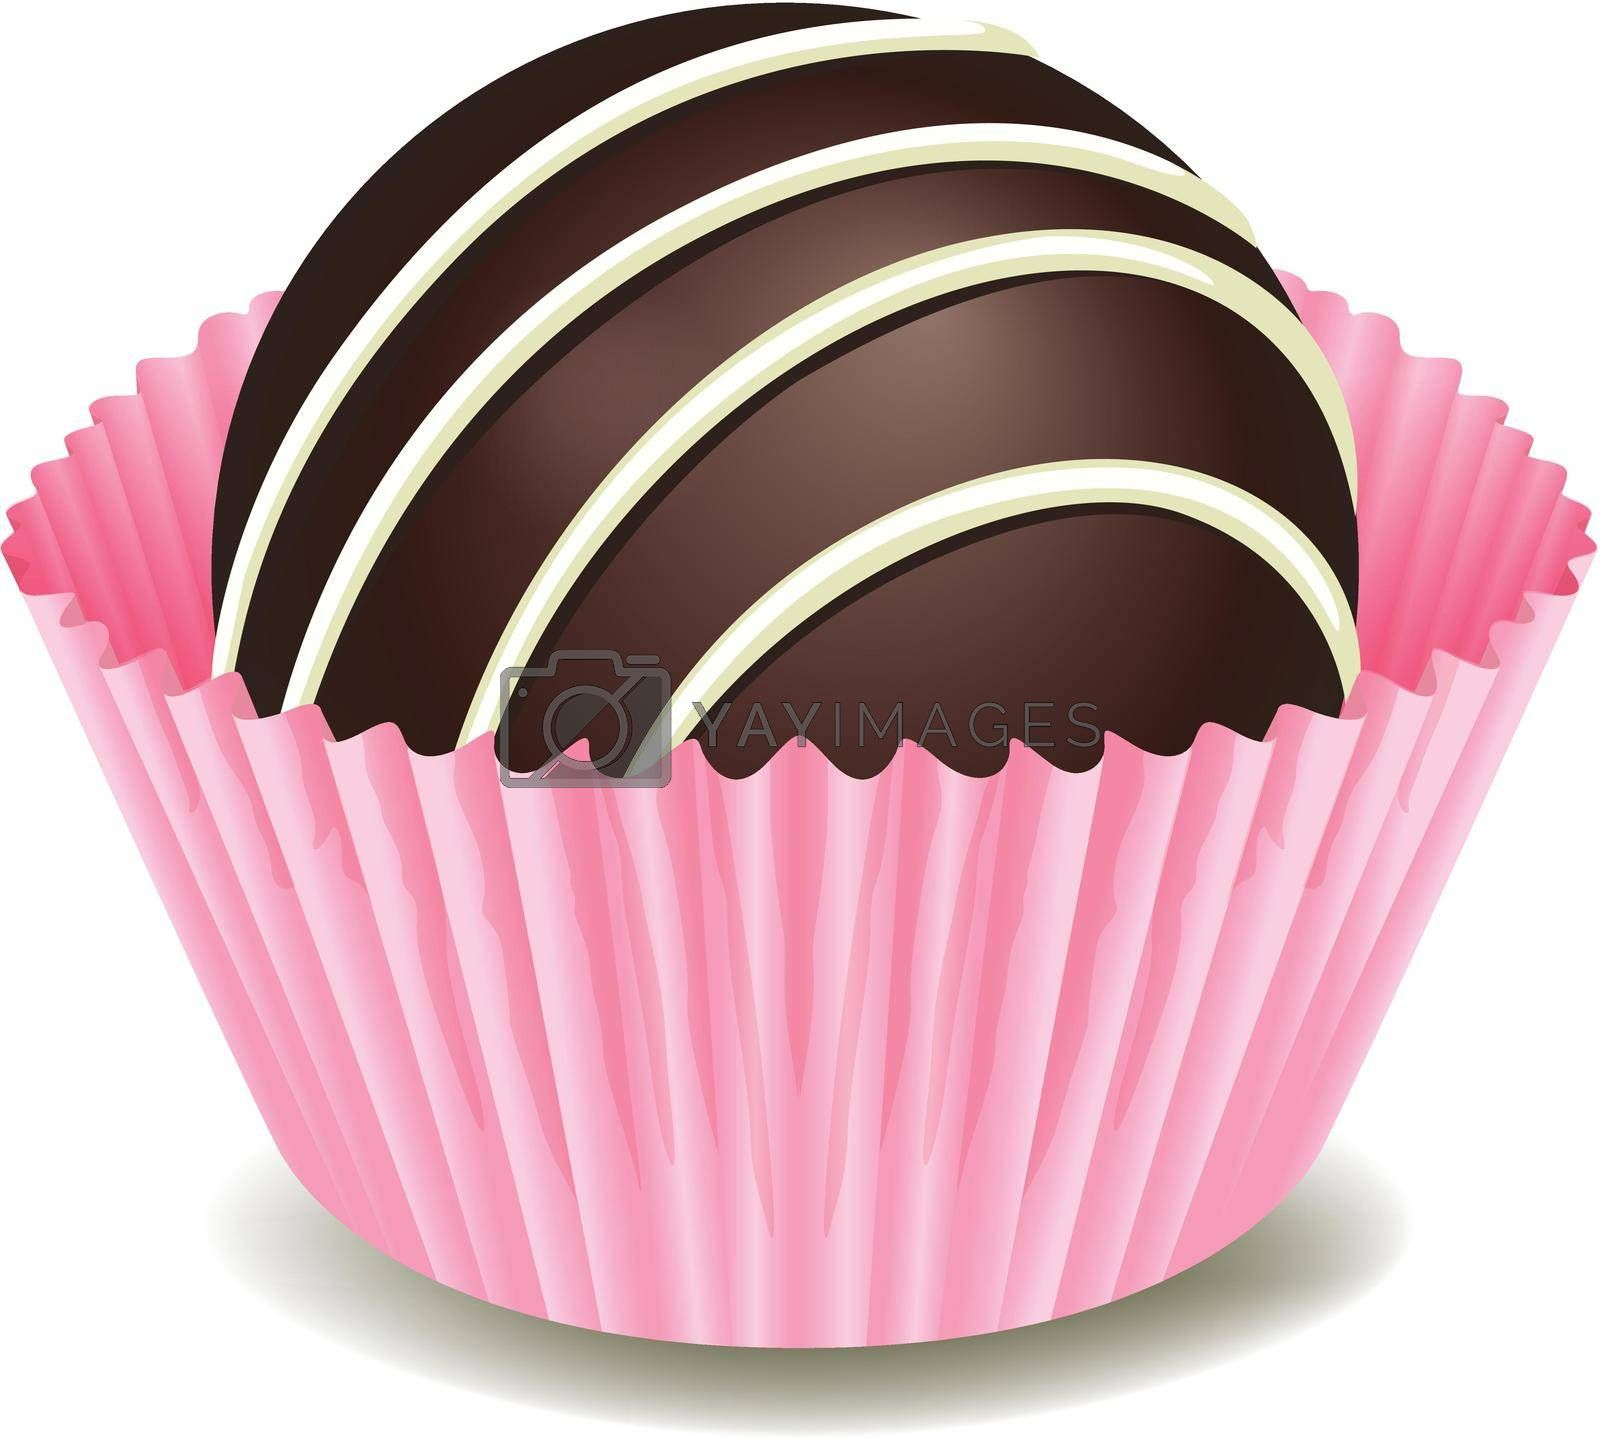 illustration of chocolates in a pink cup on a white background